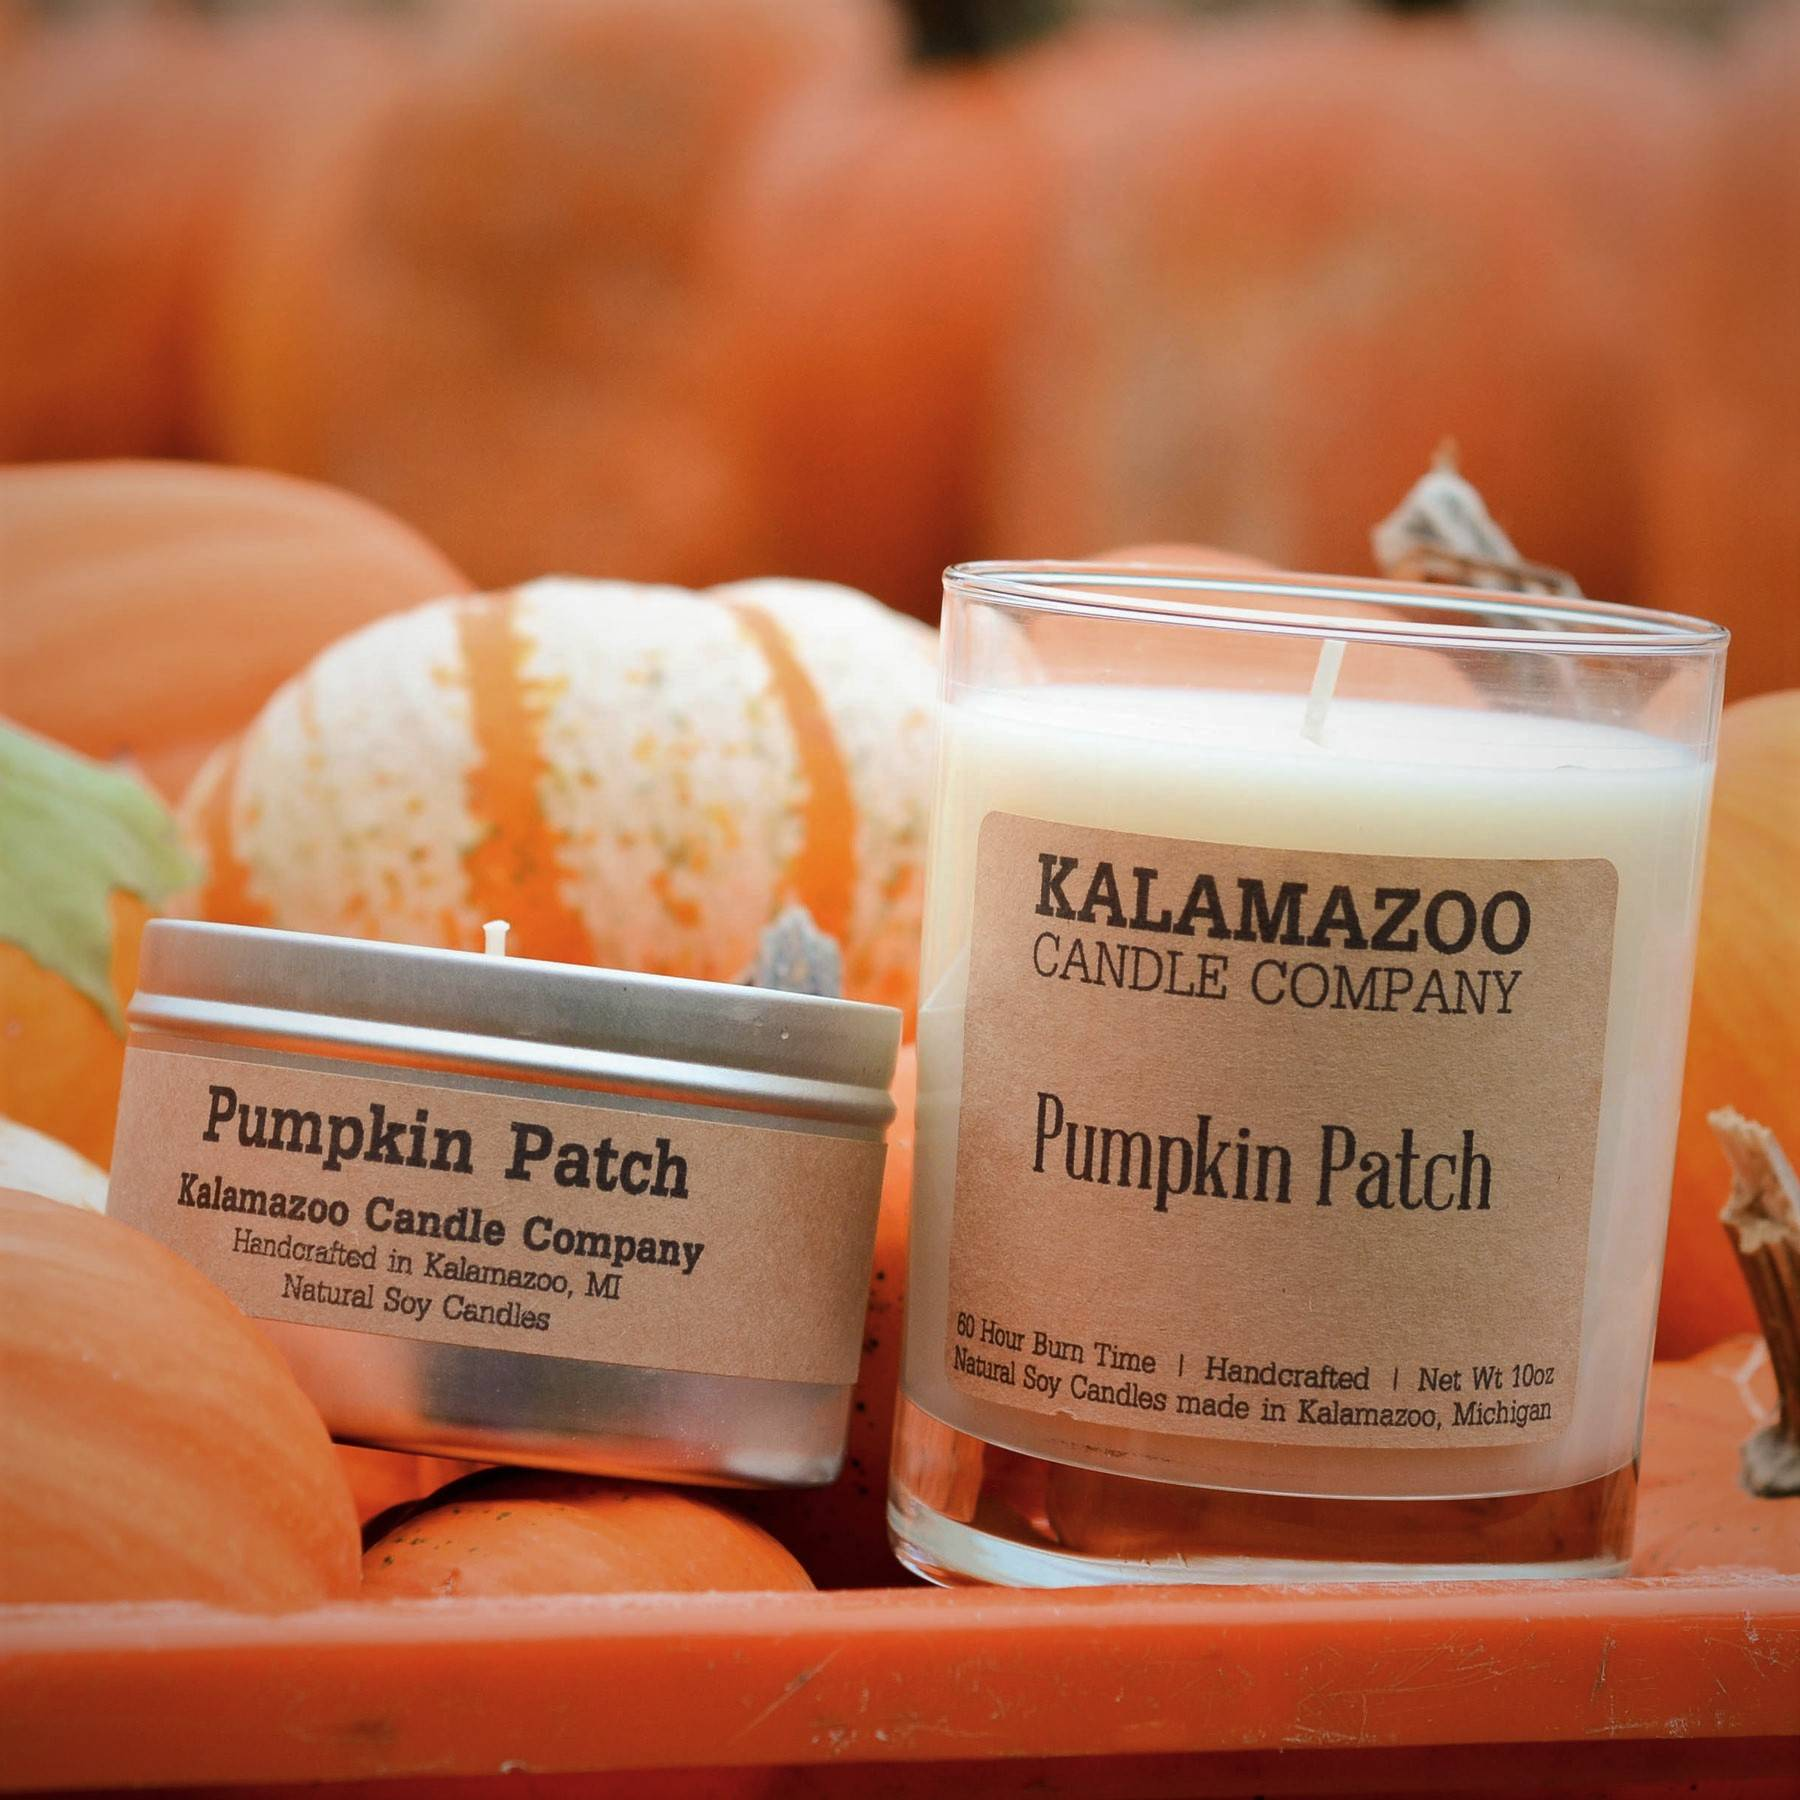 Pumpkin Patch natural soy wax scented candle